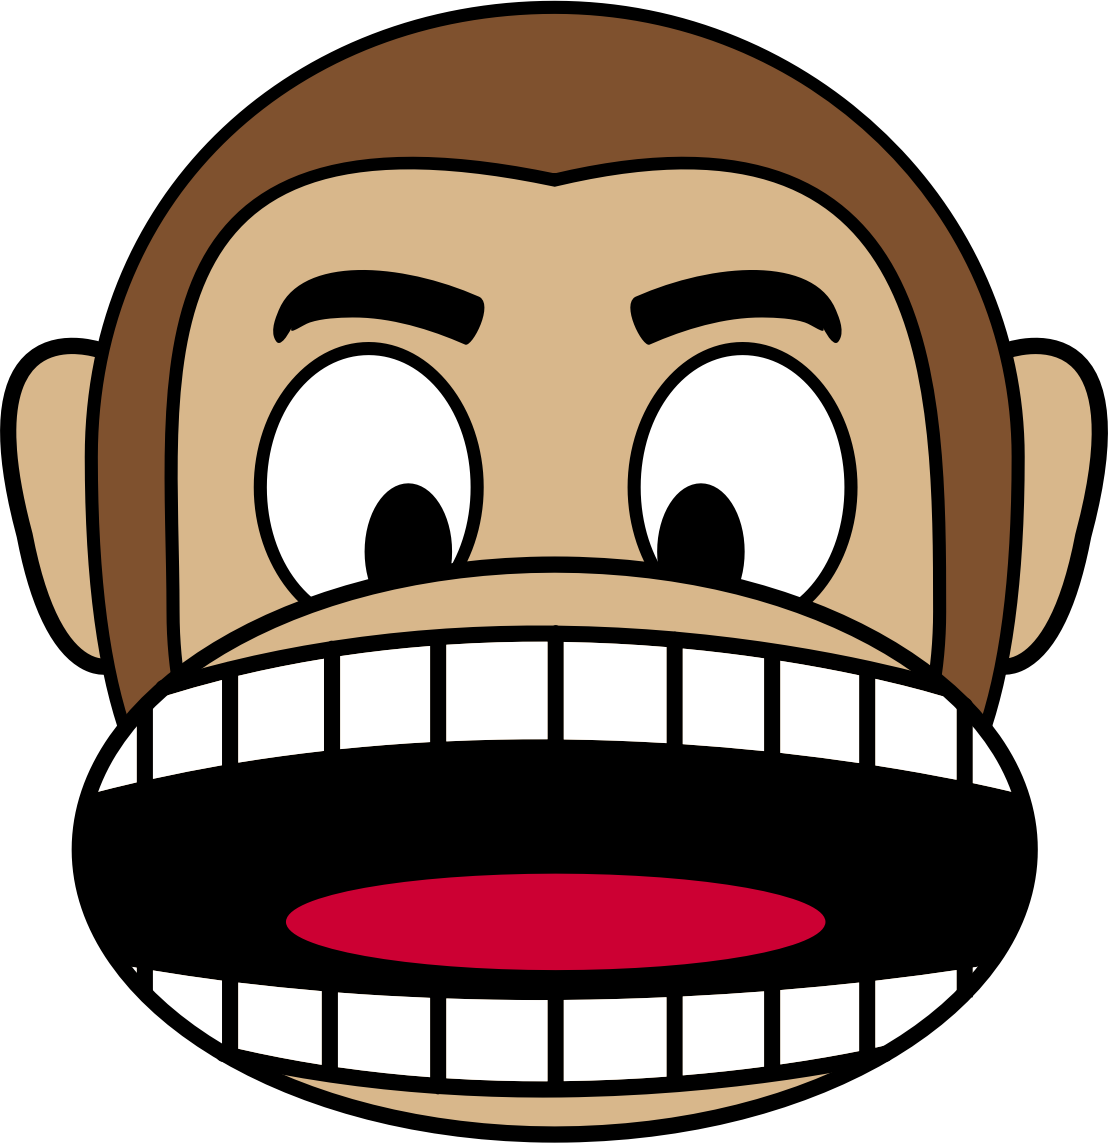 Monkey Emoji - Angry by buzzbomb